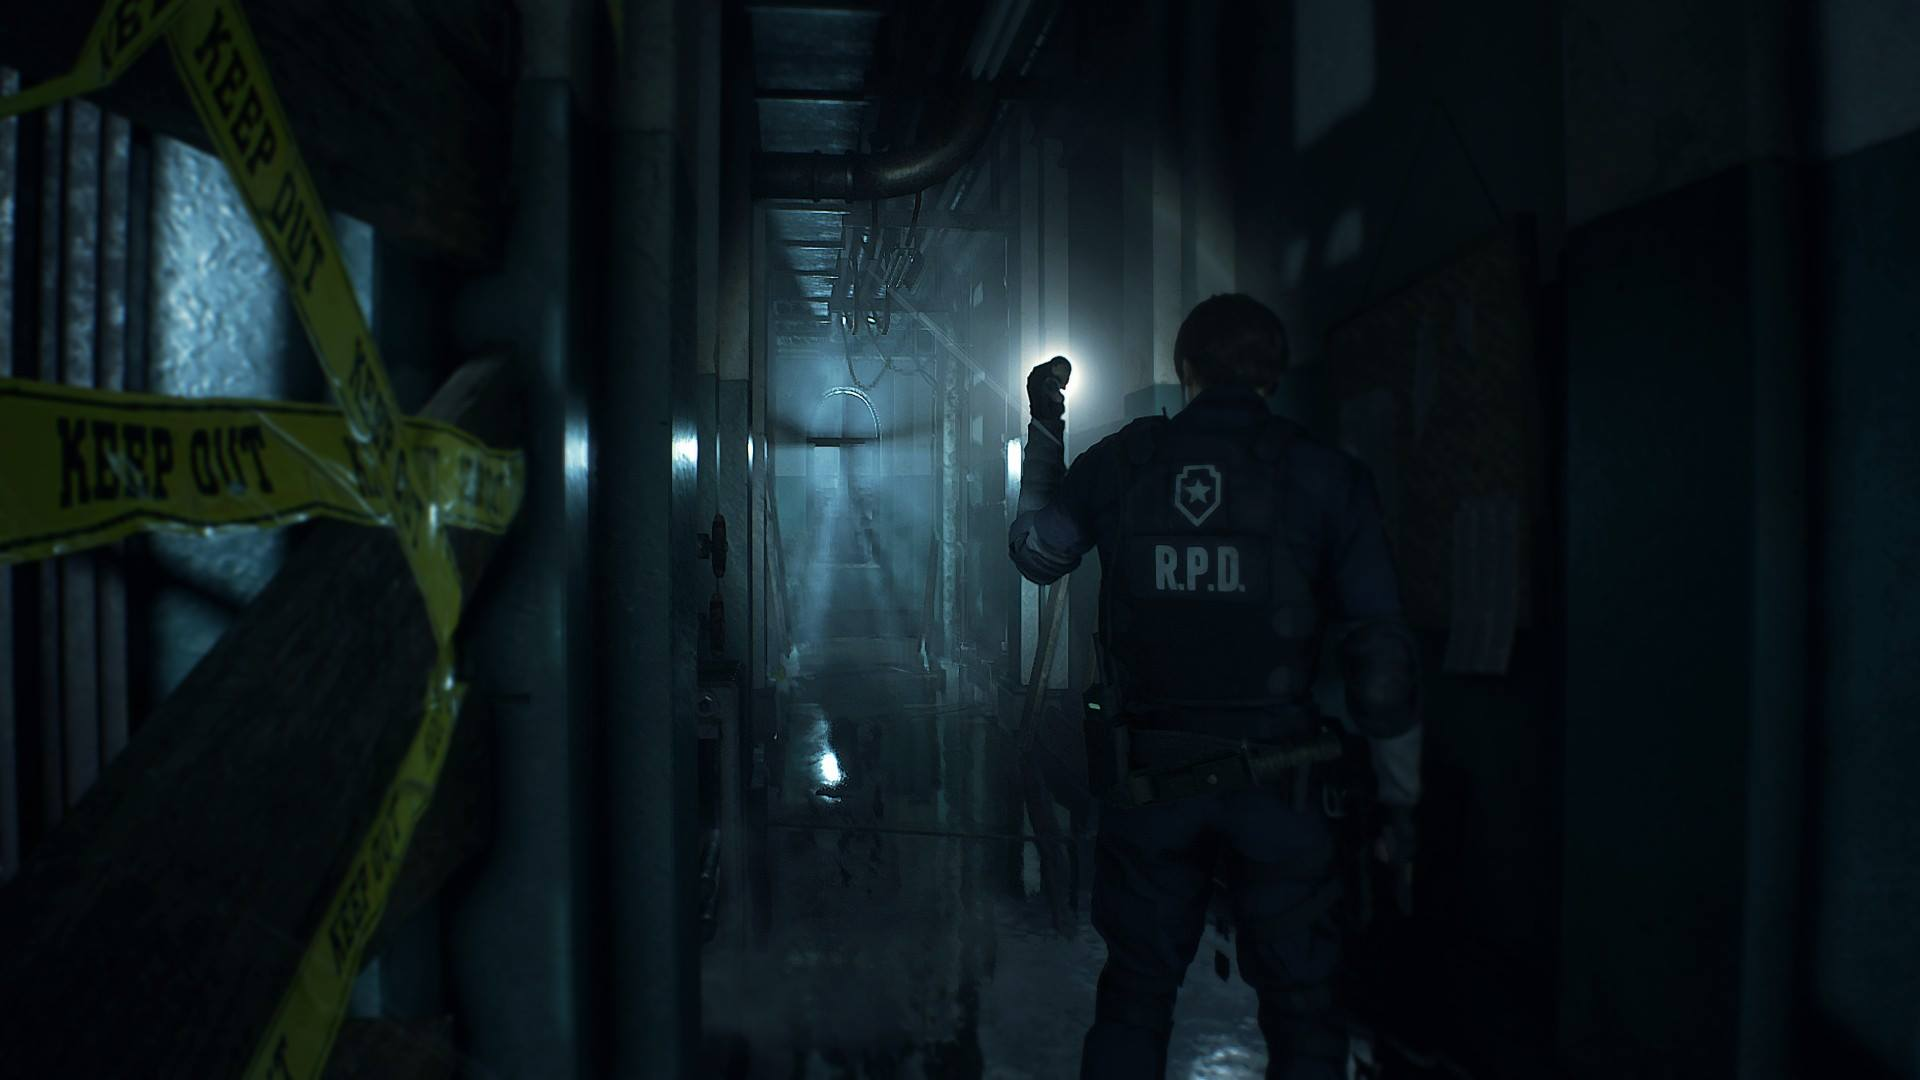 Resident Evil 2 Remake Gameplay Looks Brutal In Stunning New Video